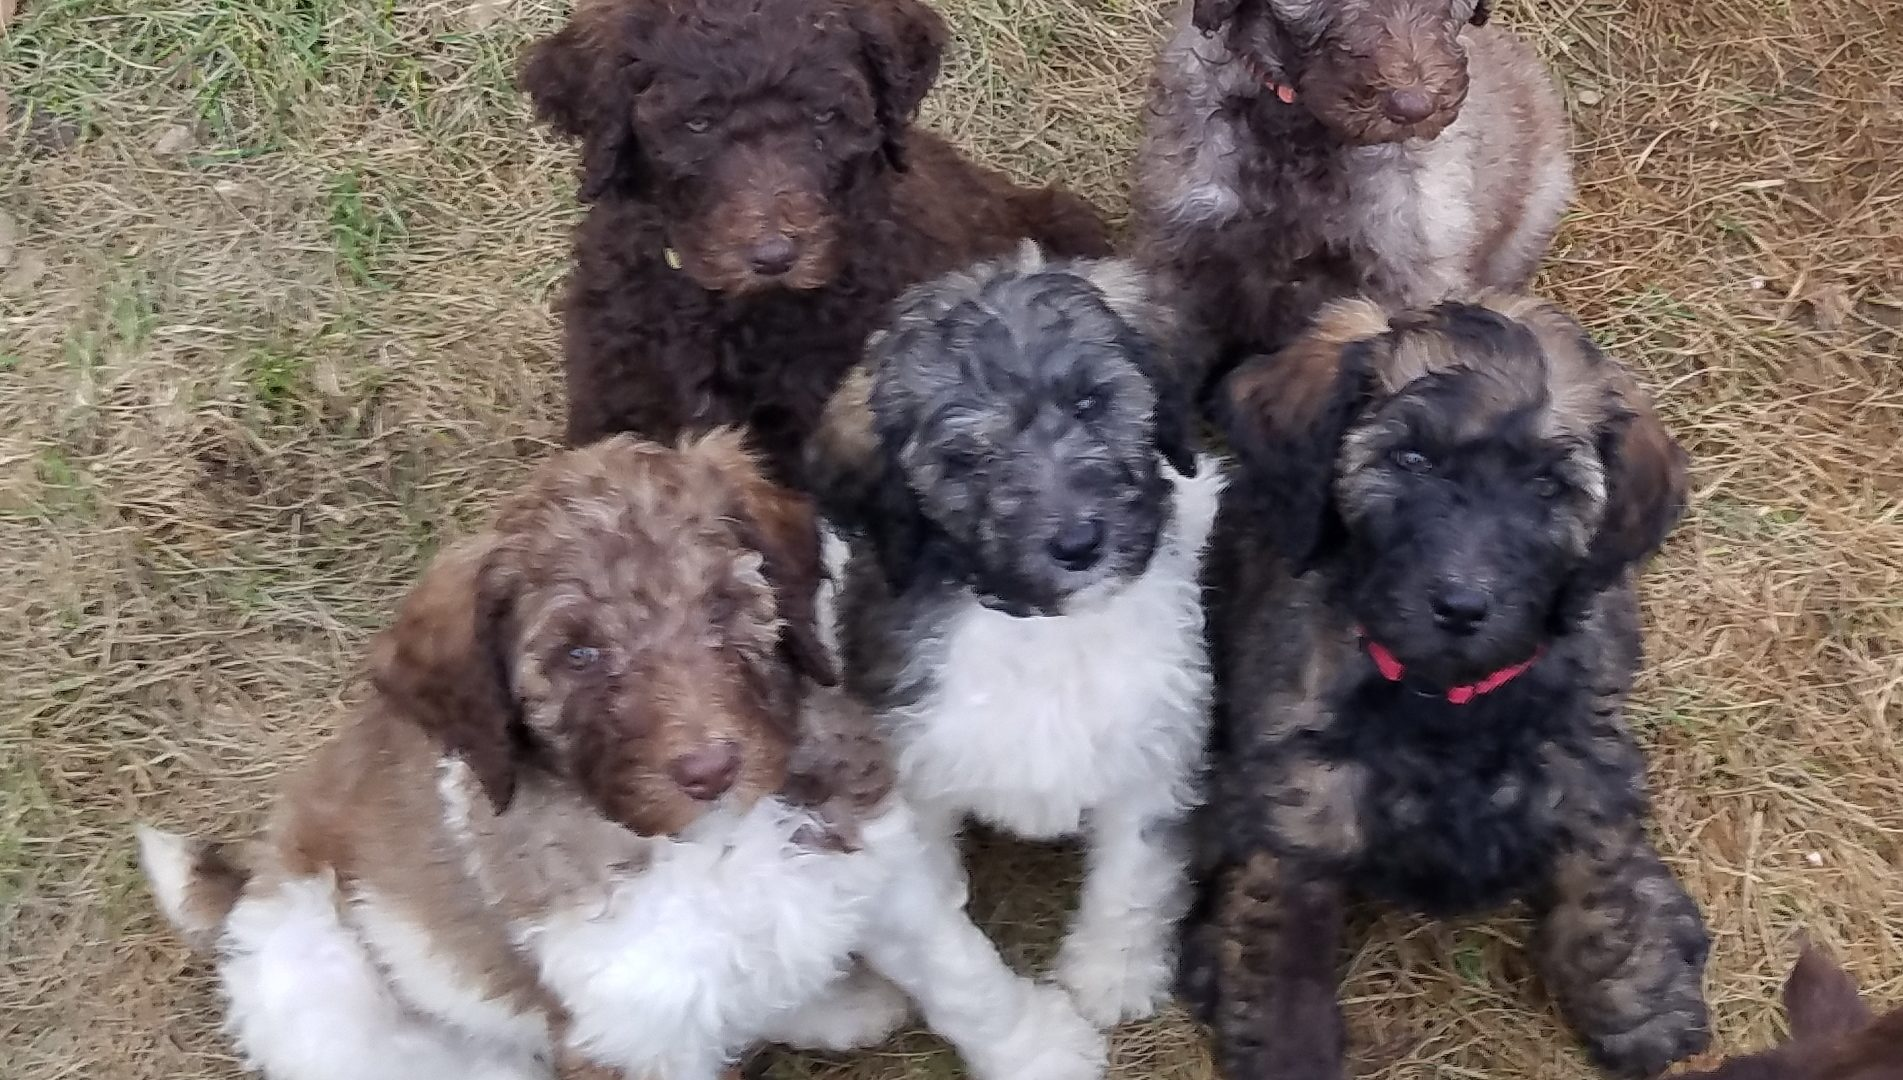 Puppy group photo